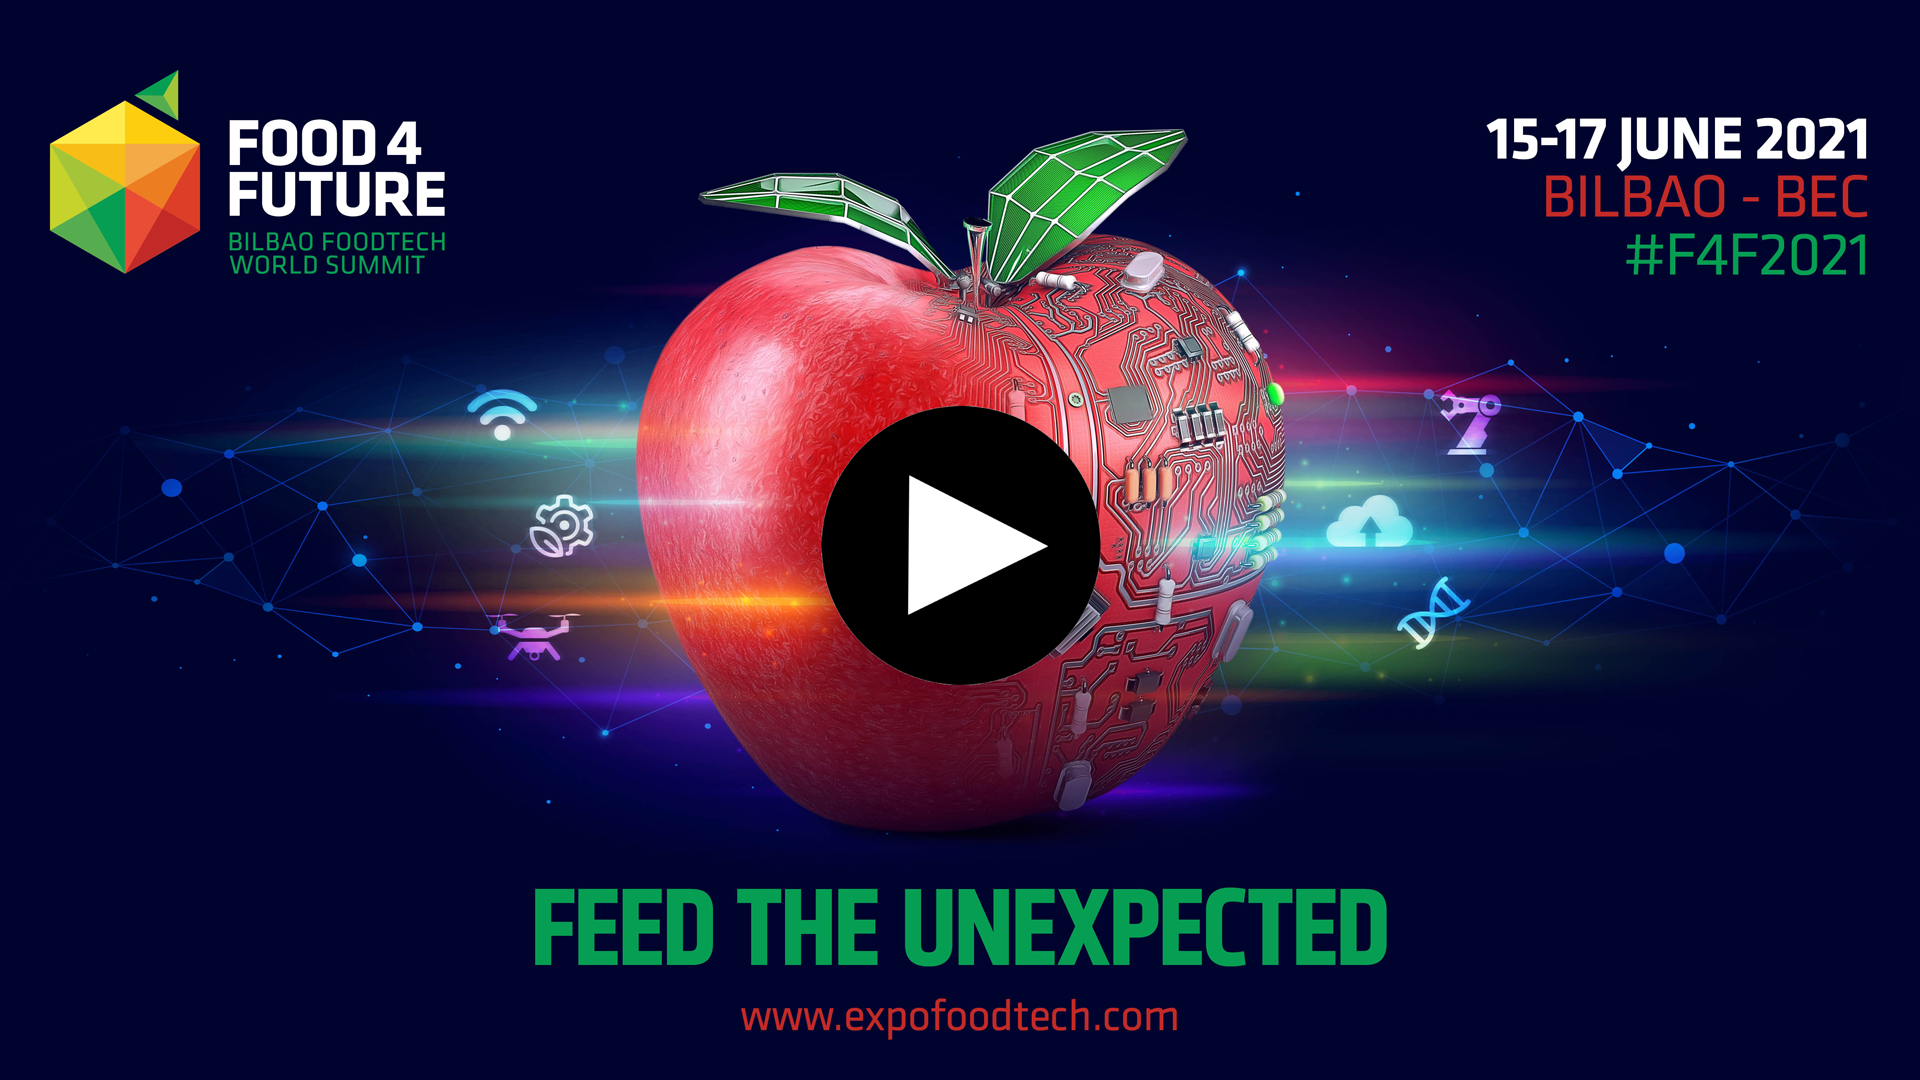 Discover what Food 4 Future ExpoFoodTech will offer us